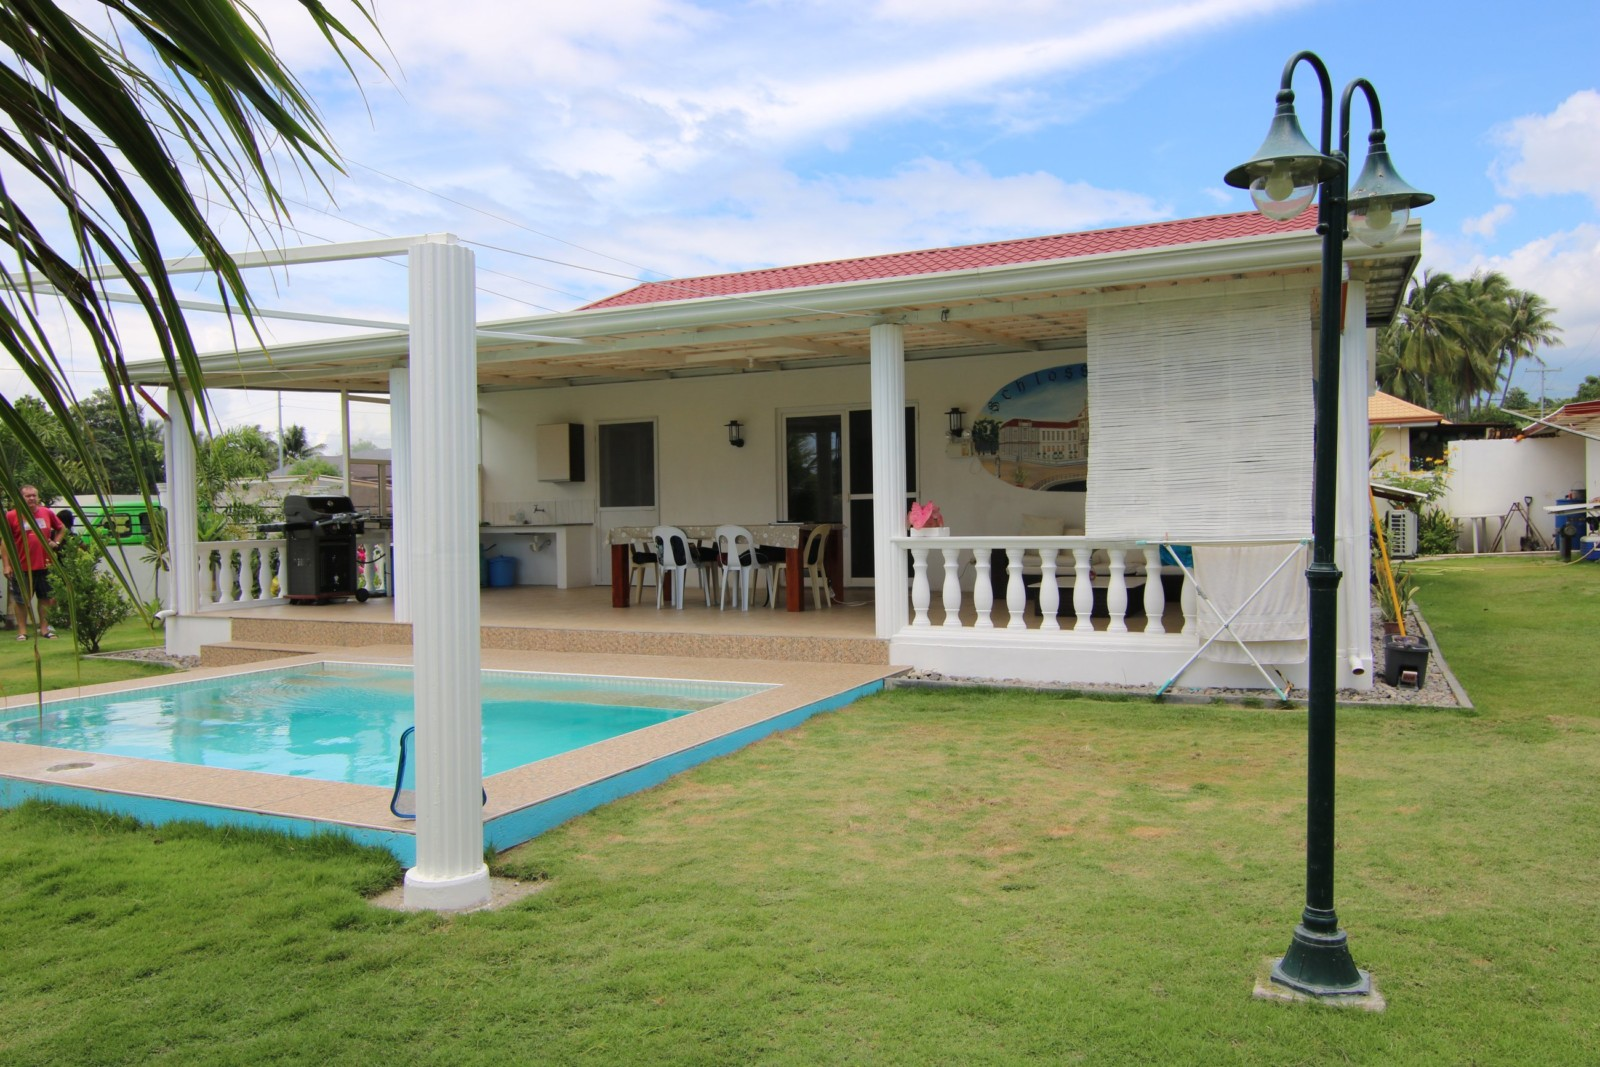 HOUSE AND LOT FOR SALE NEAR THE BEACH